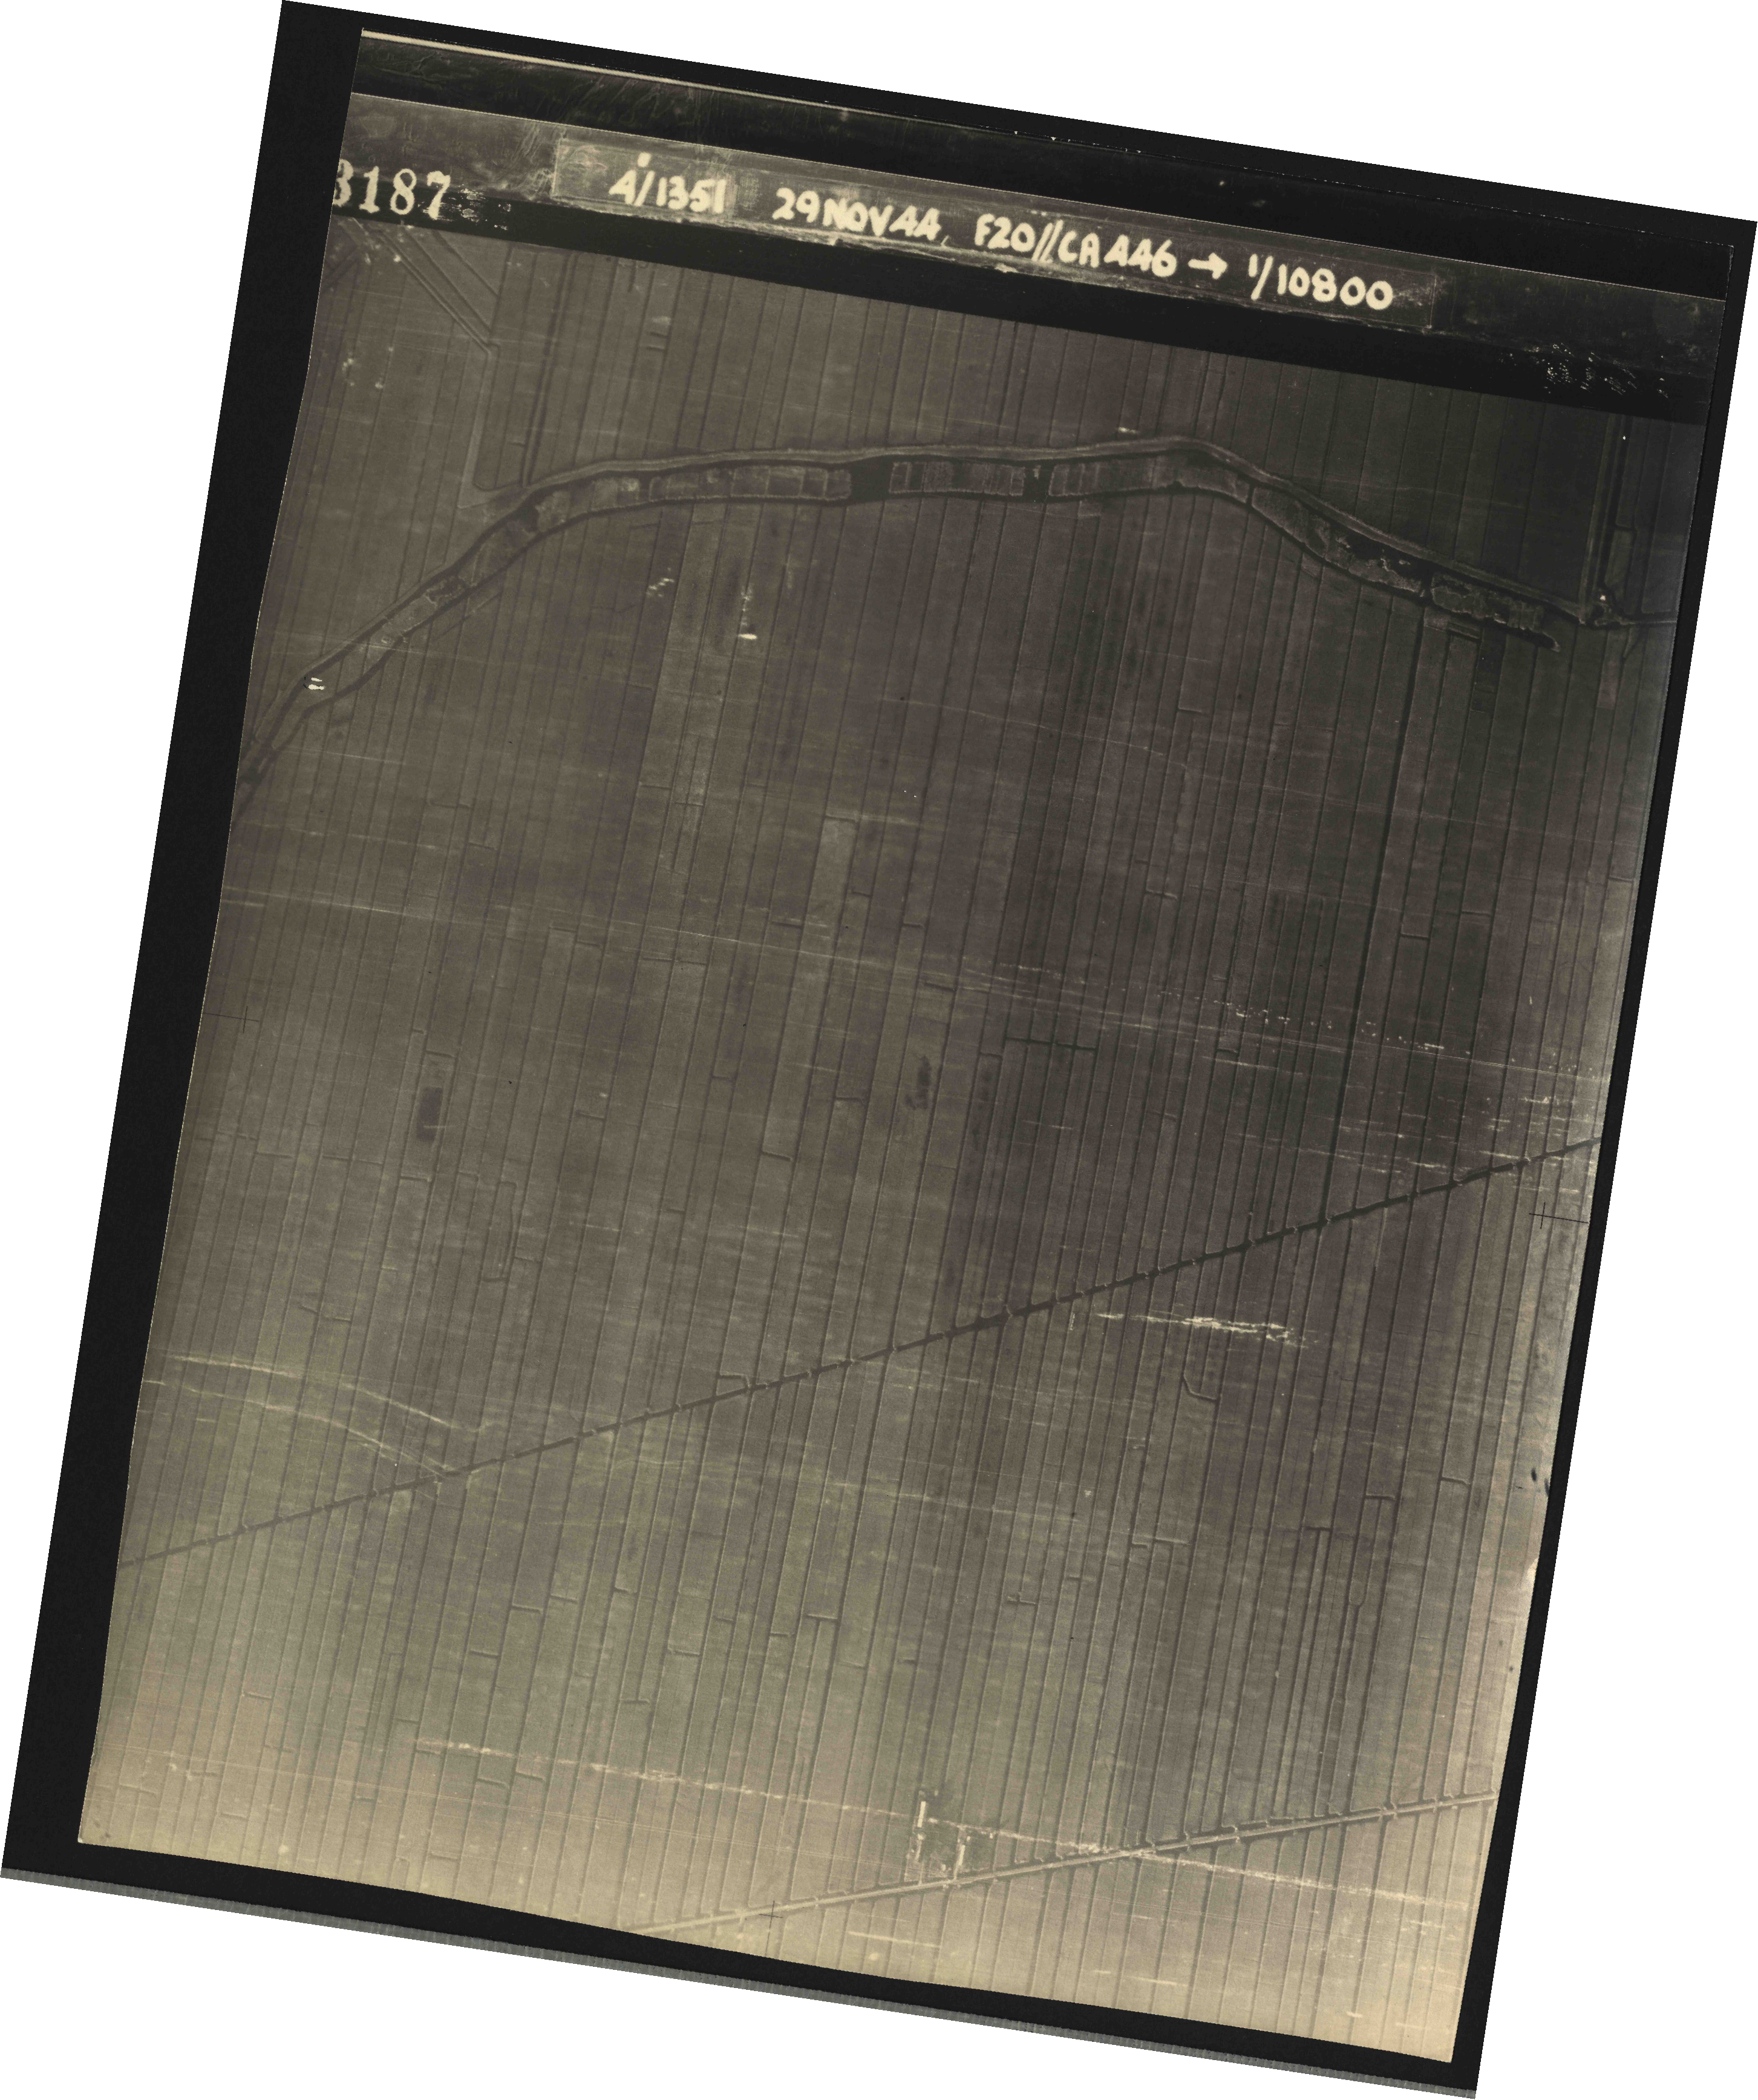 Collection RAF aerial photos 1940-1945 - flight 045, run 01, photo 3187